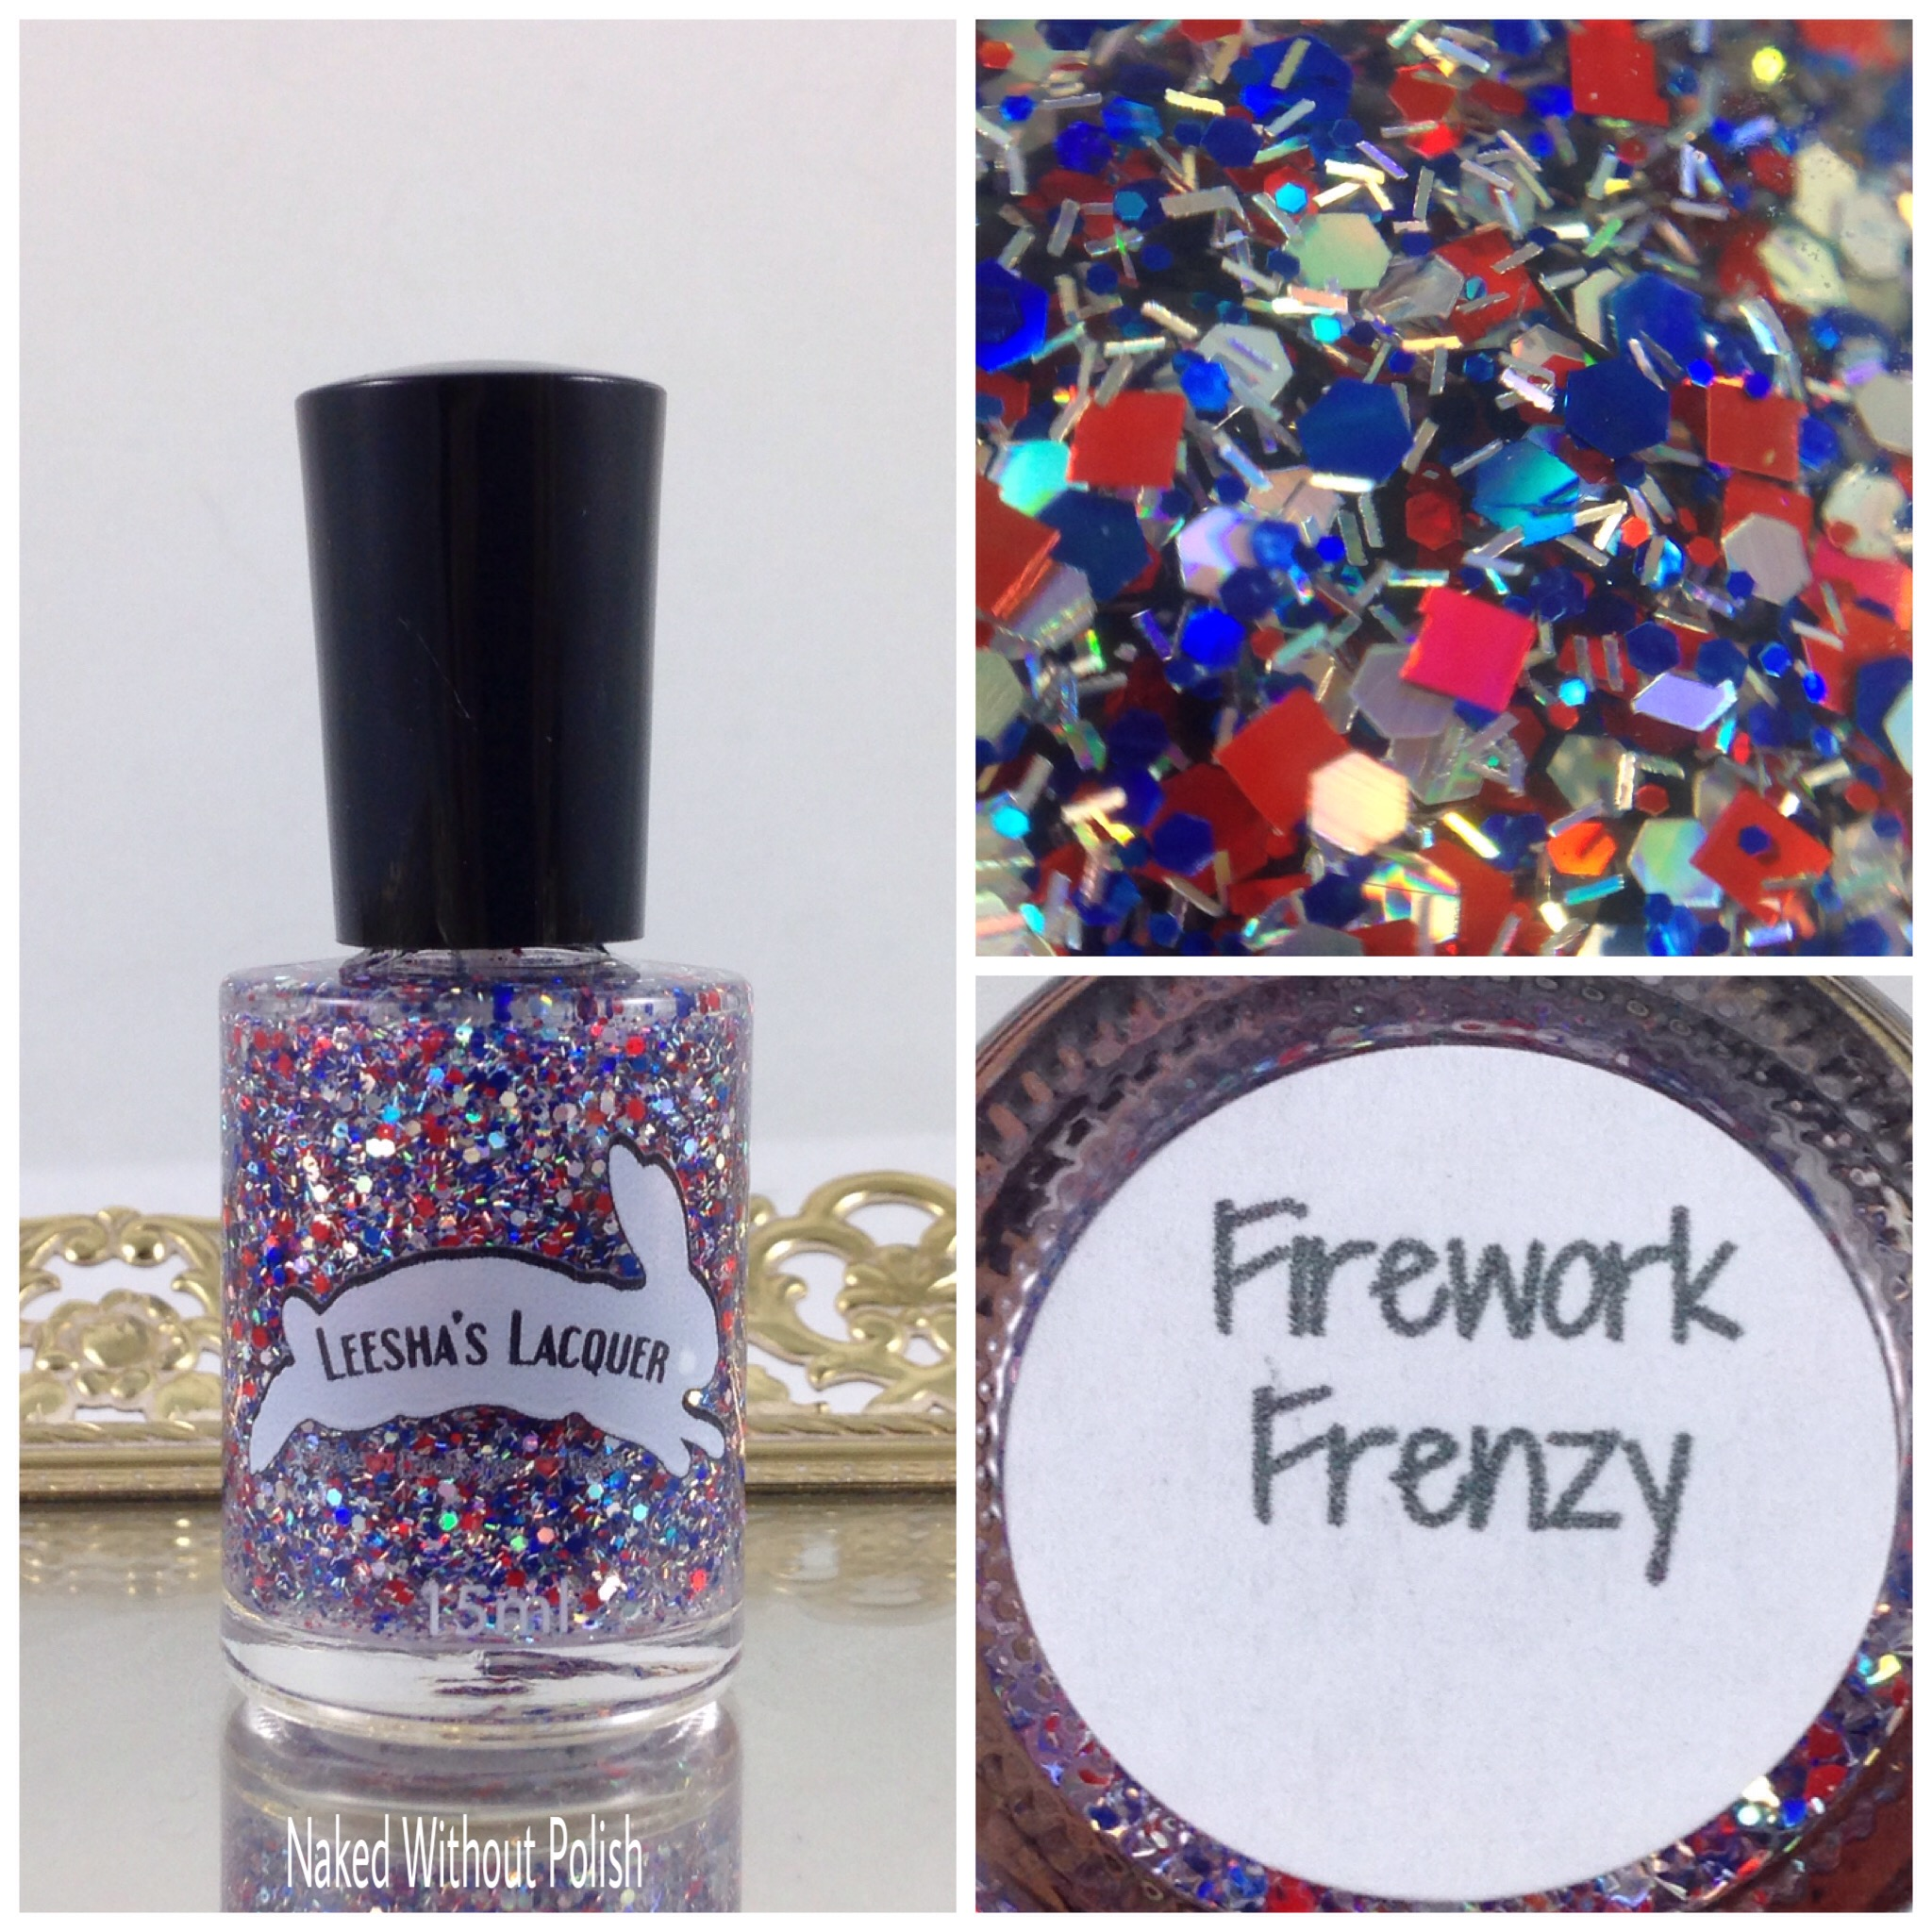 Leeshas-Lacquer-Firework-Frenzy-1